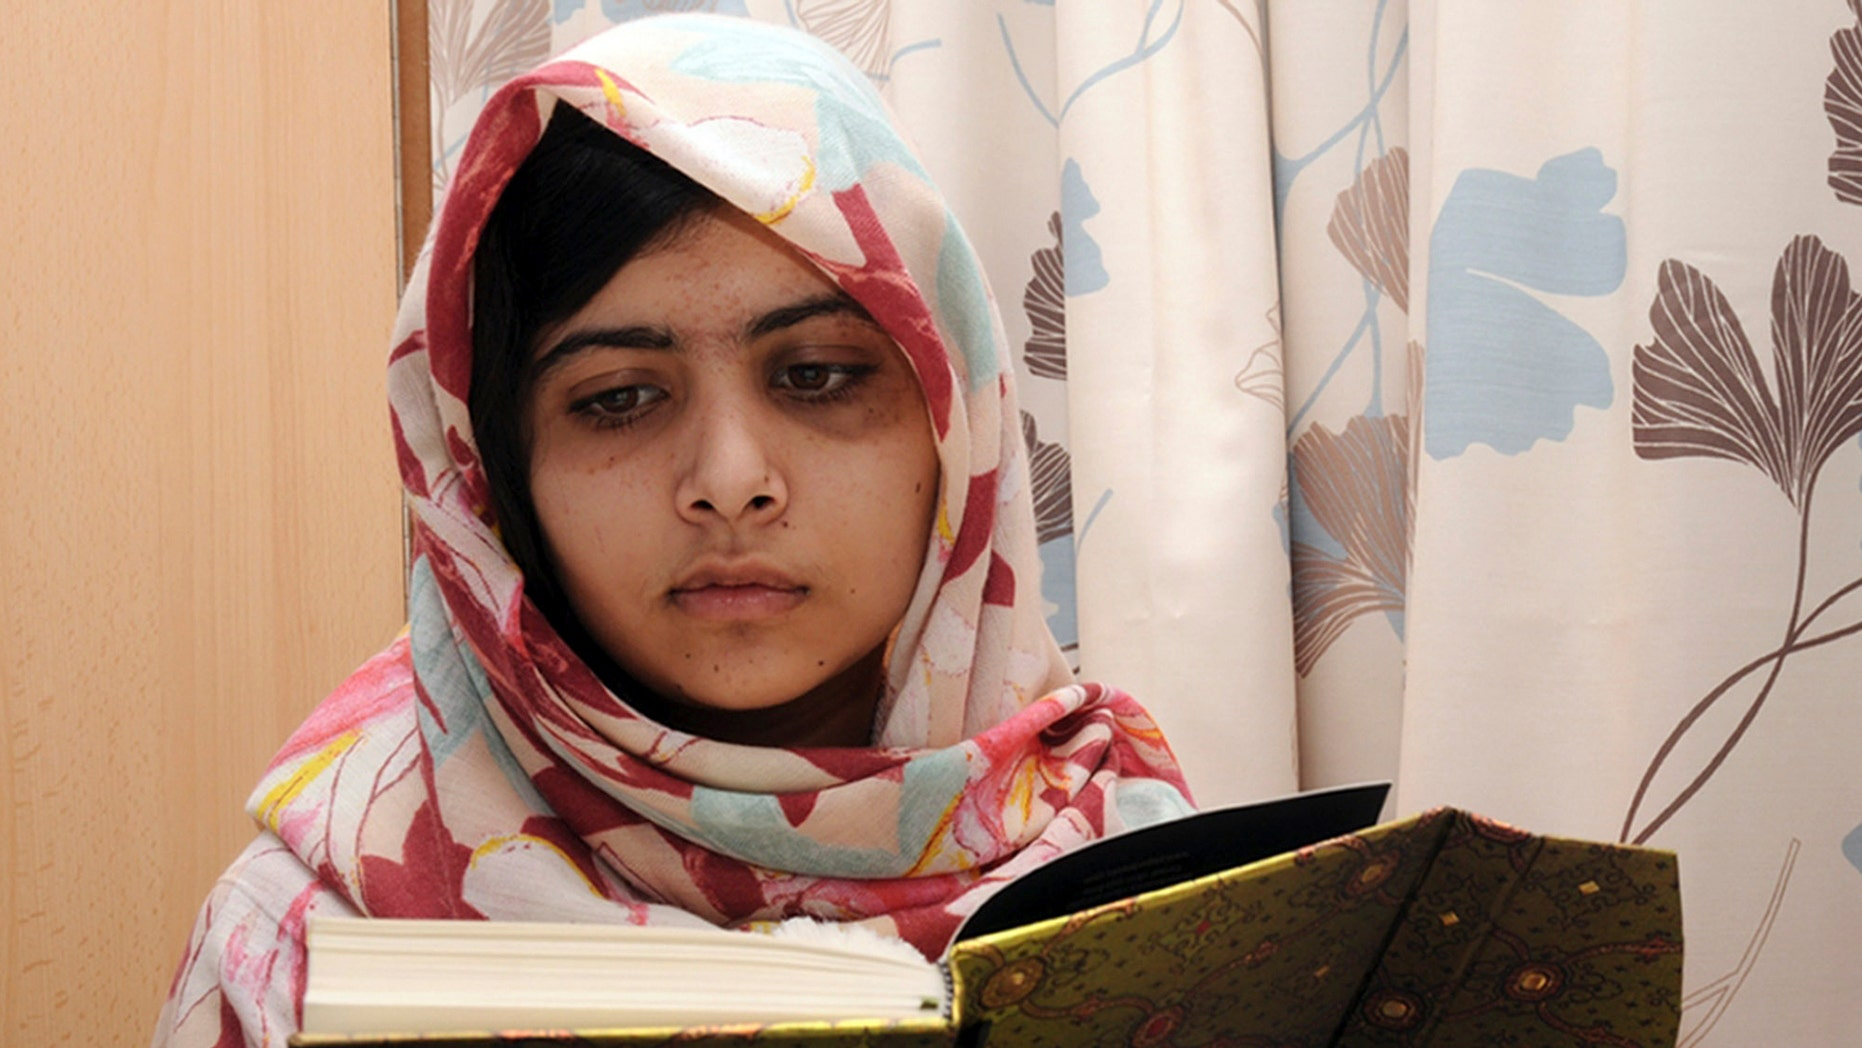 In this undated file photo provided by Queen Elizabeth Hospital in Birmingham, England, Malala Yousufzai, the 15-year-old girl who was shot at close range in the head by a Taliban gunman in Pakistan, reads a book as she continues her recovery at a hospital.